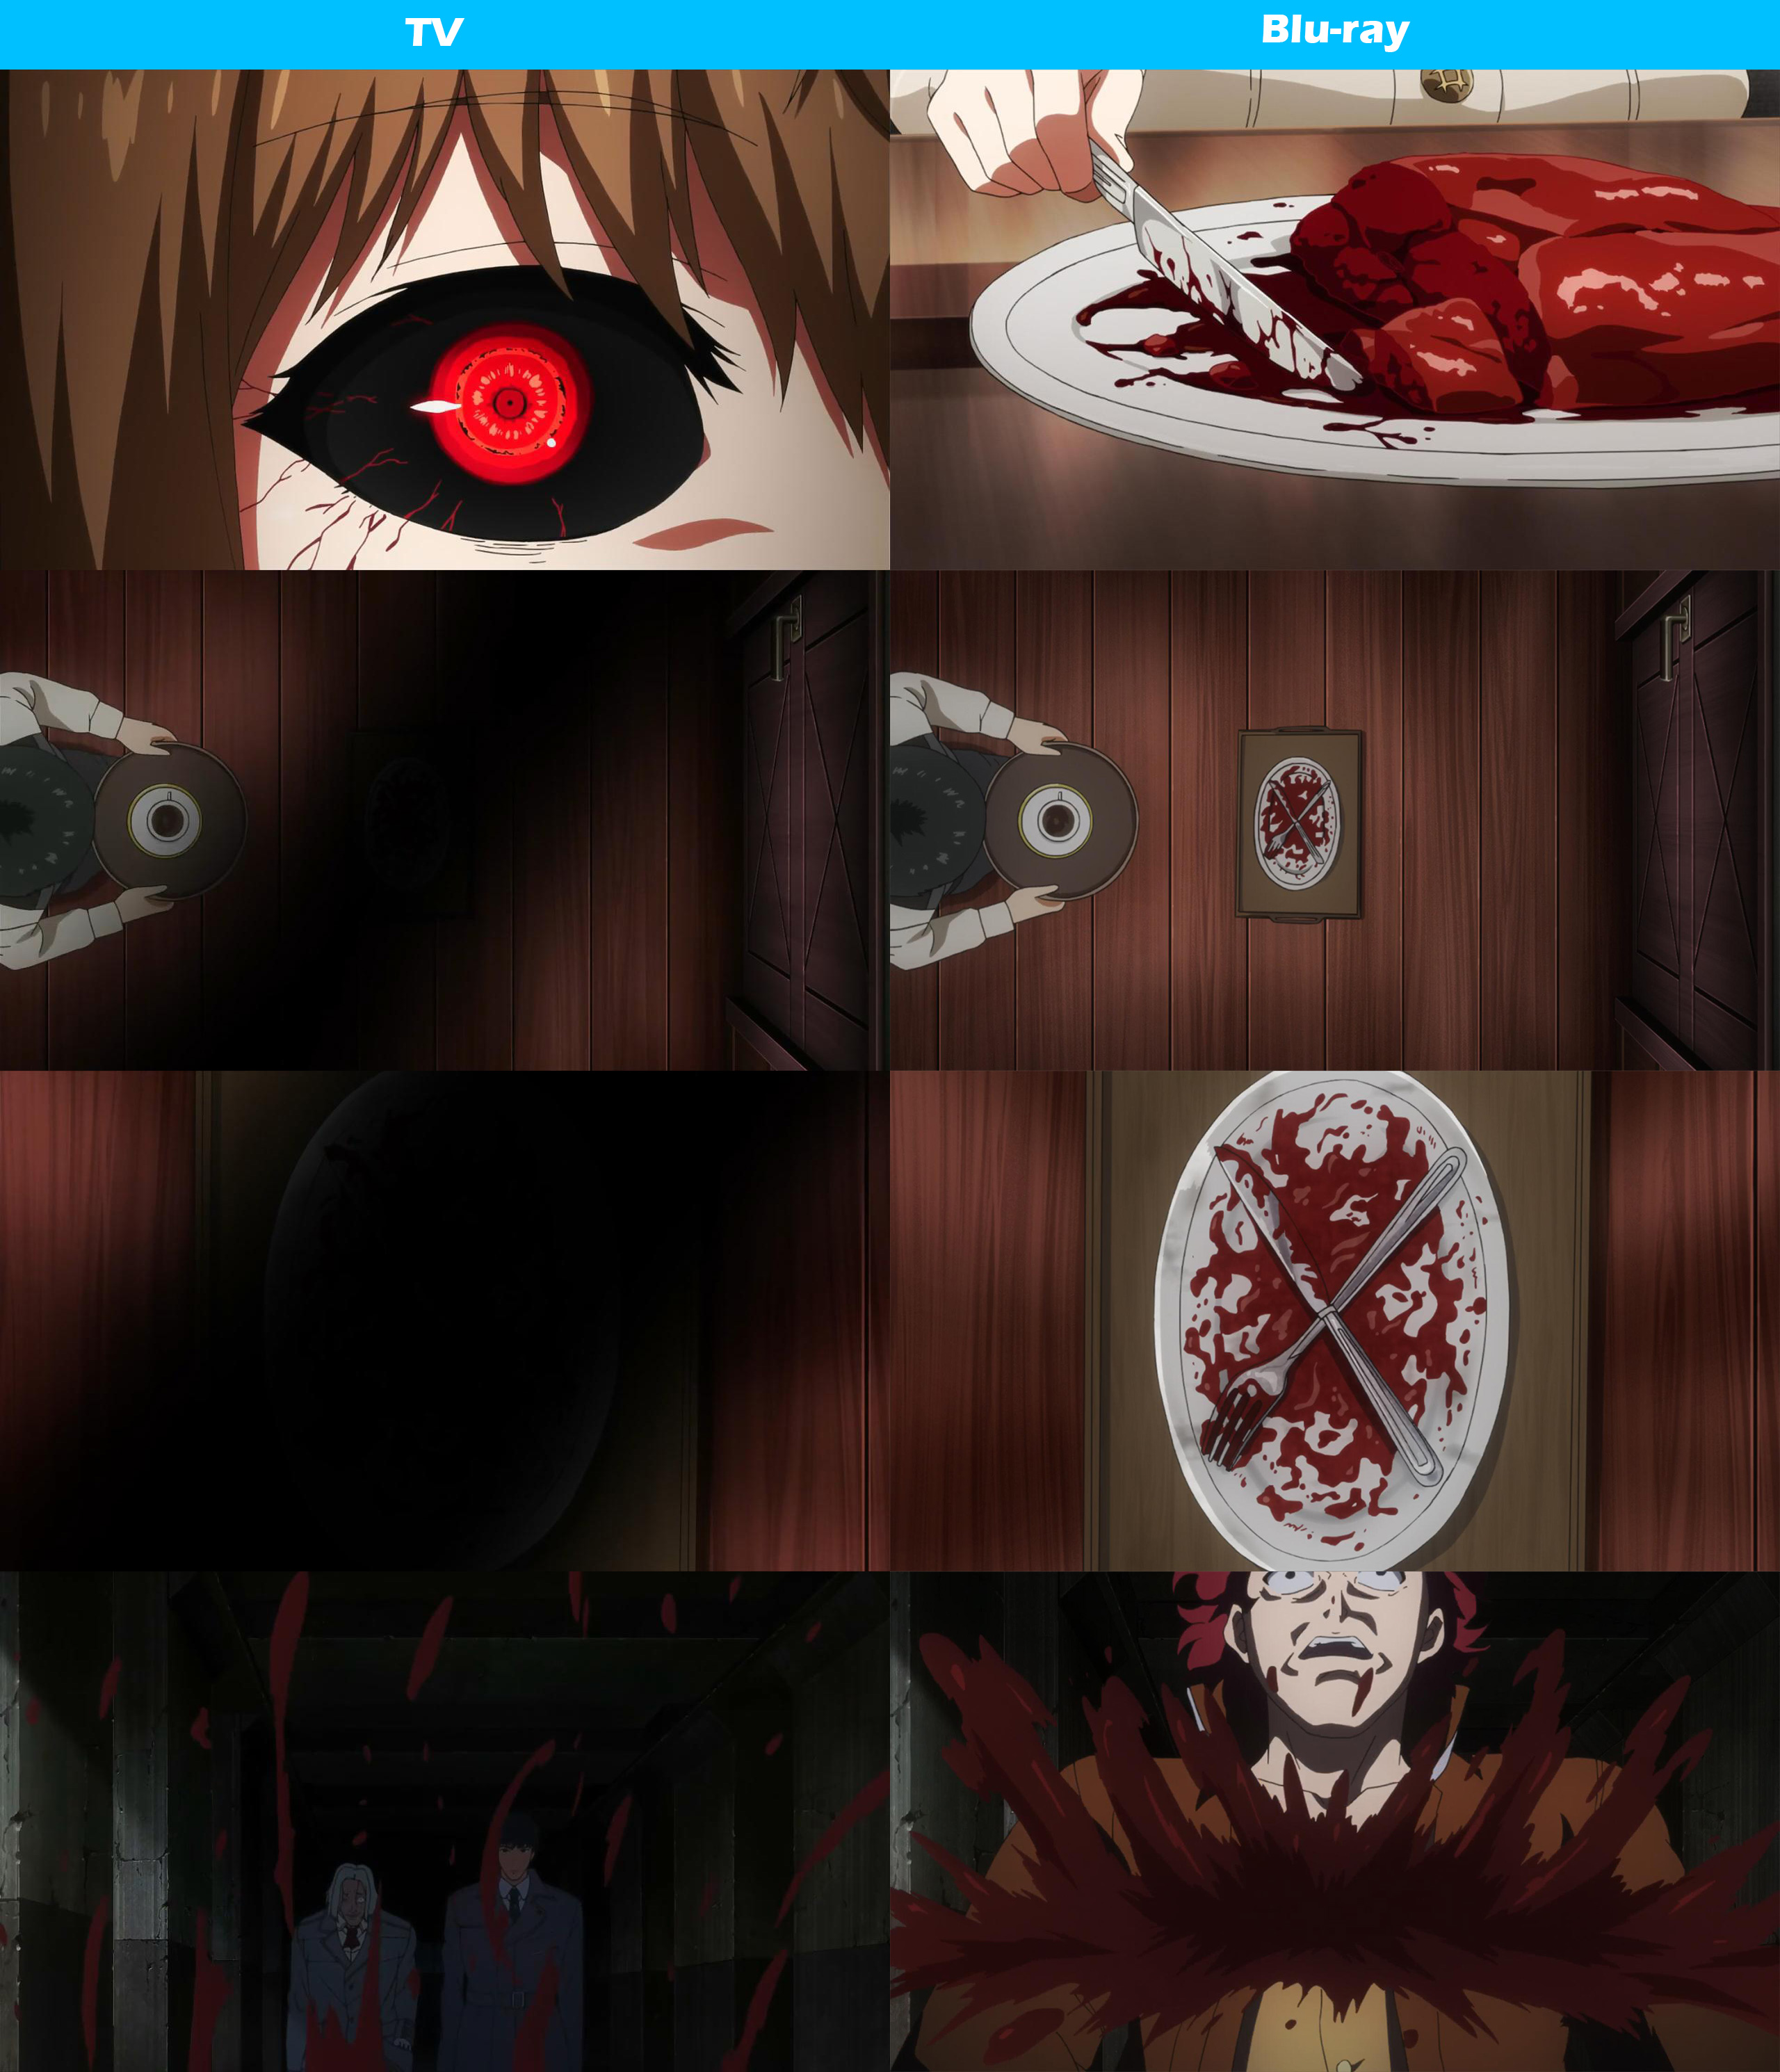 Tokyo-Ghoul_haruhichan.com---TV-and-Blu-ray-Comparison-Image-6